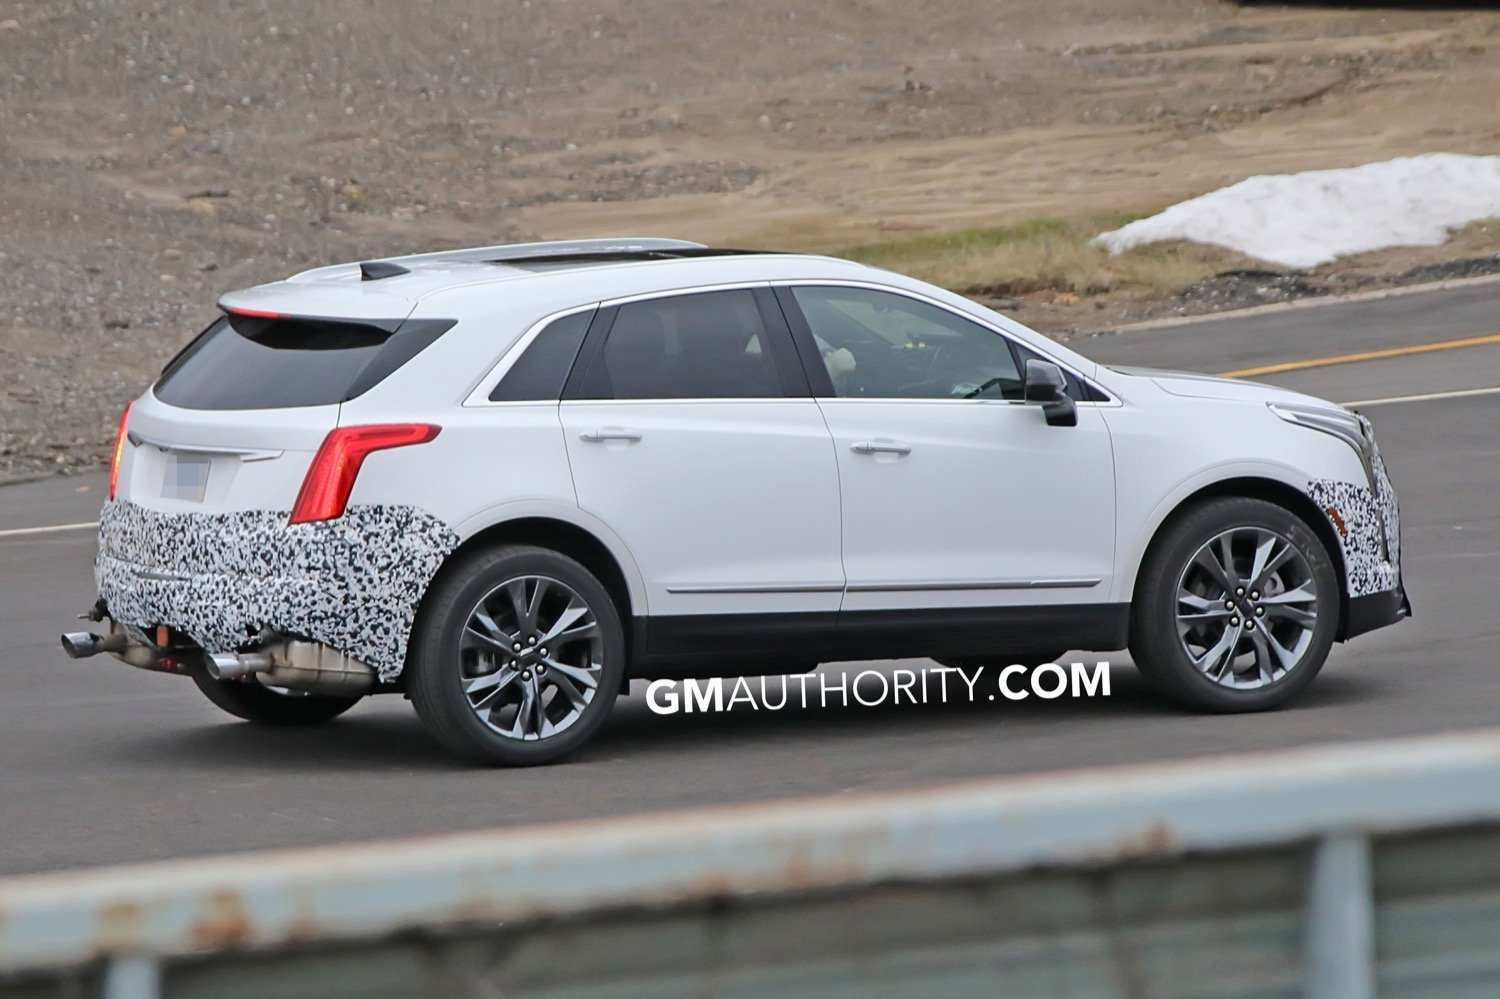 80 A 2020 Cadillac Xt4 Release Date Concept